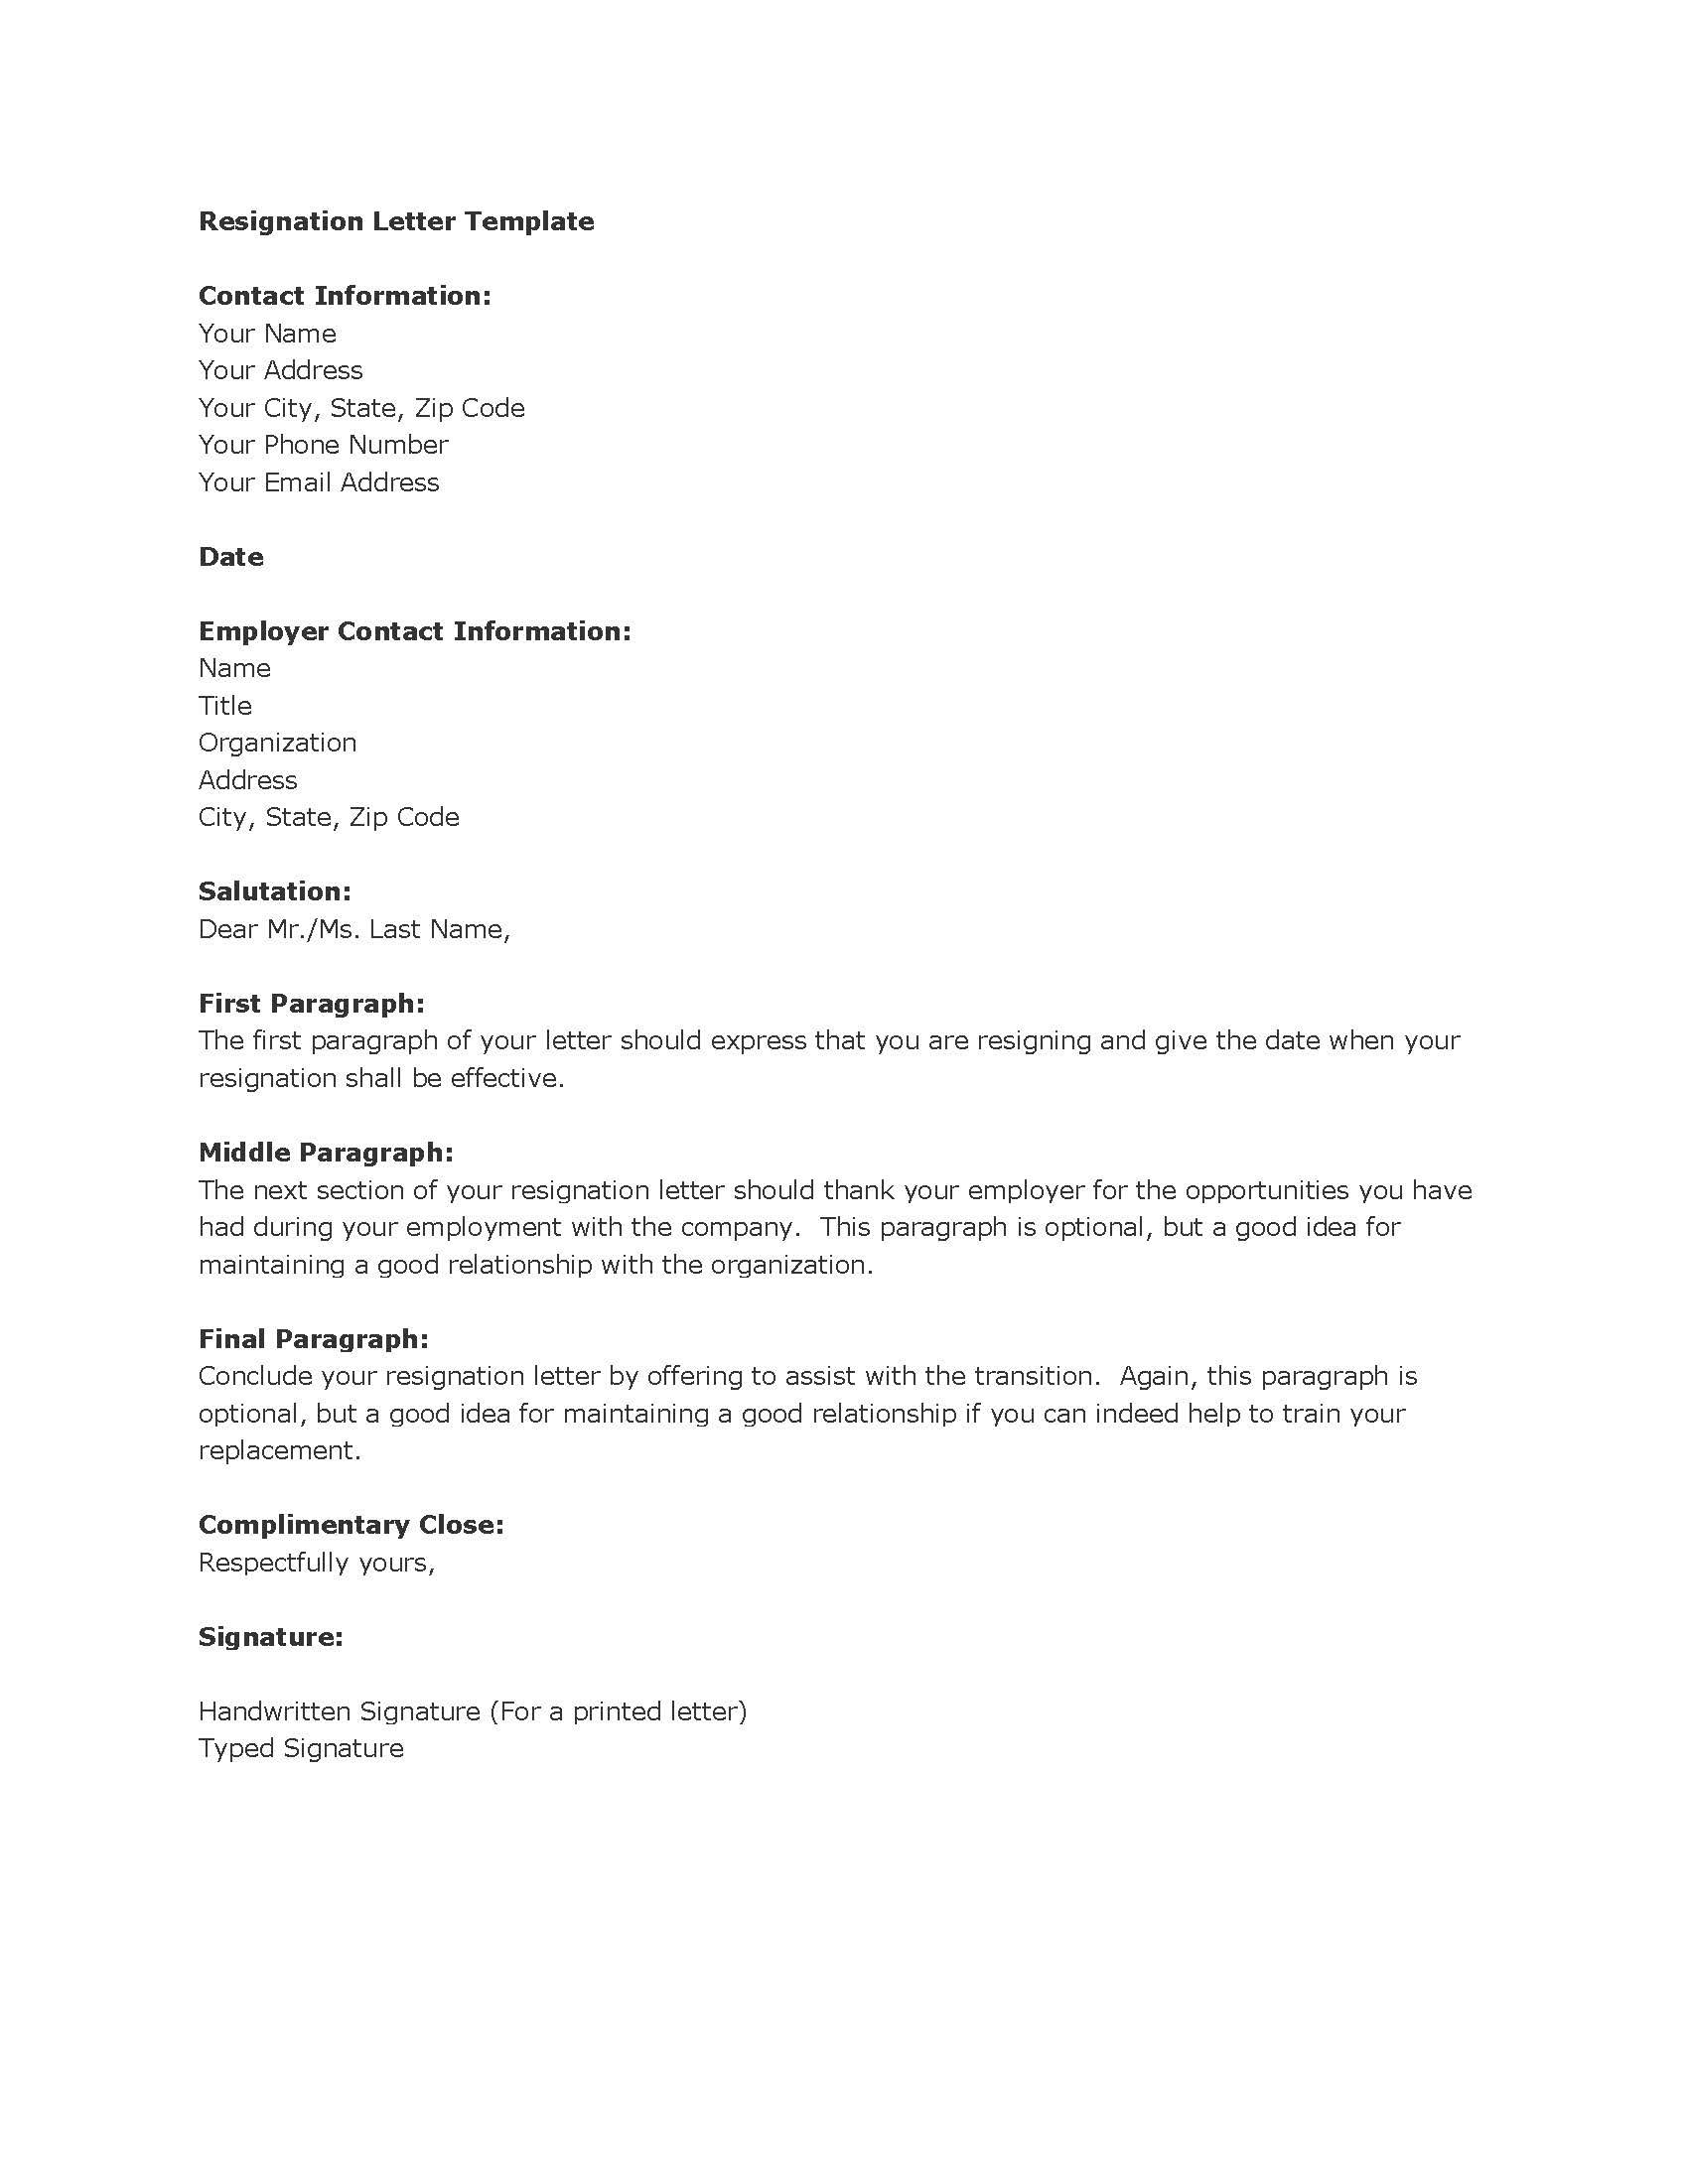 Resigning Letter Sample Resignation Letter Short Notice Sample